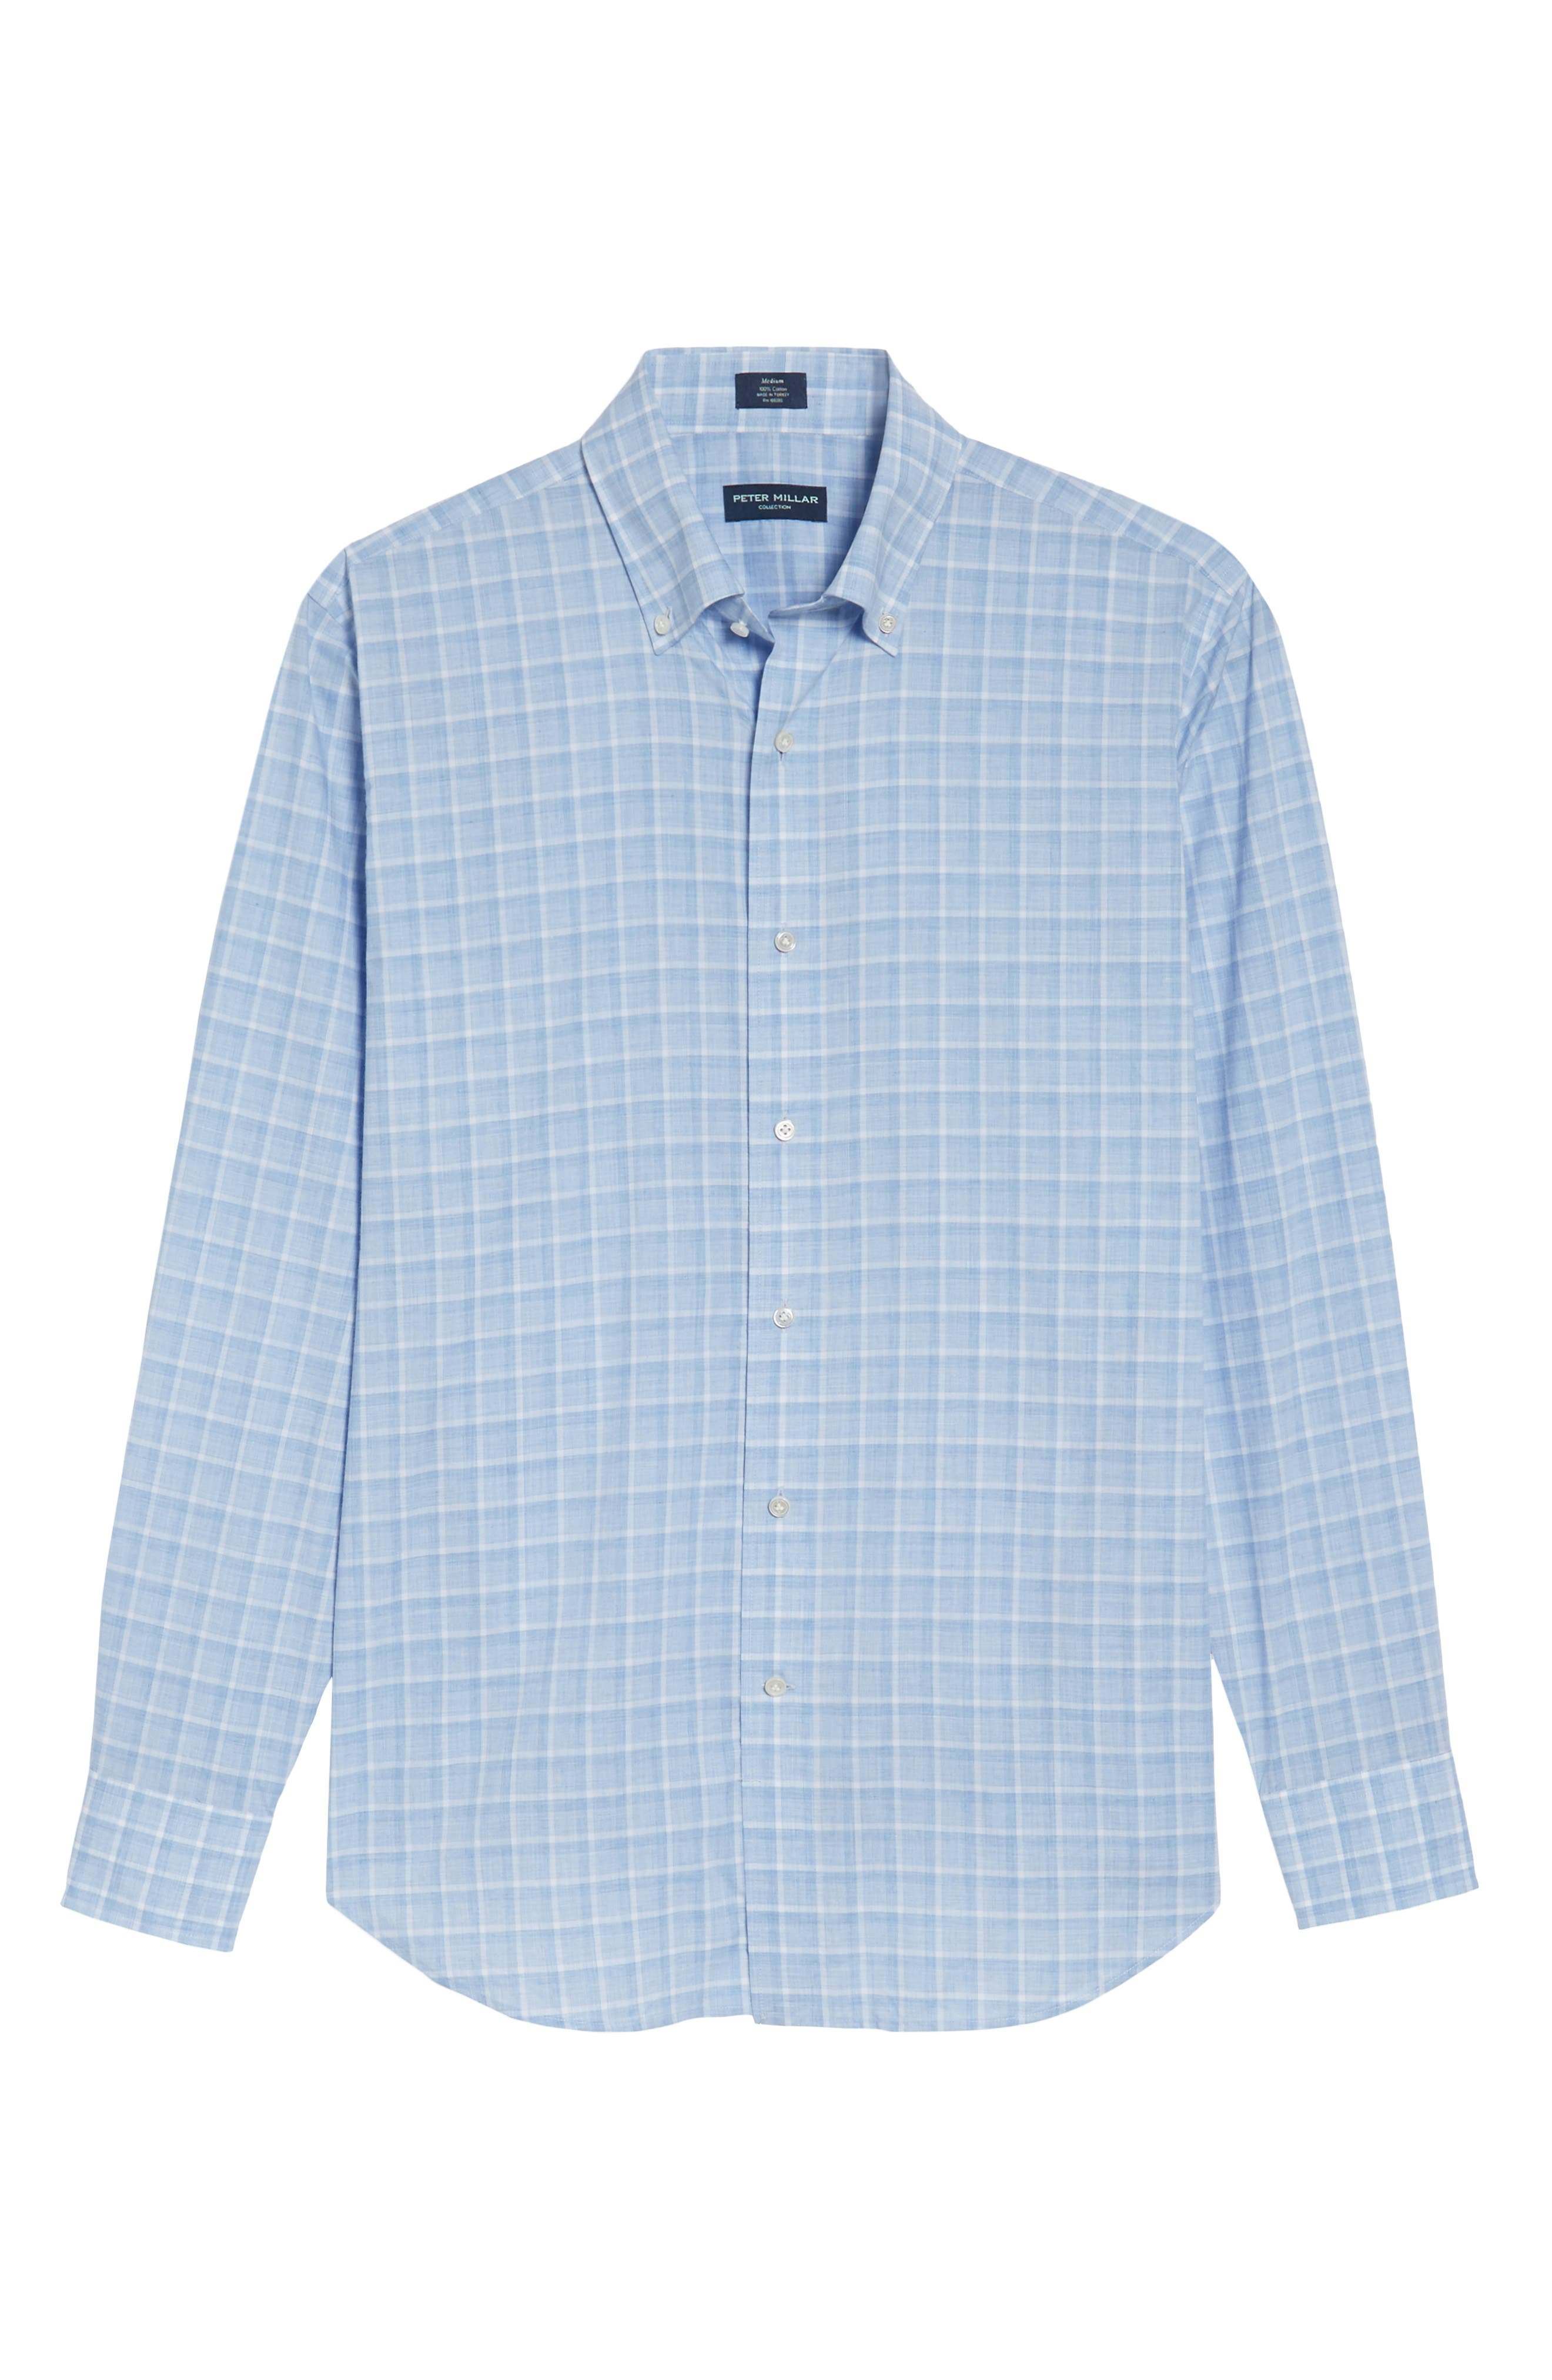 Starry Night Tailored Fit Mélange Check Sport Shirt,                             Alternate thumbnail 6, color,                             Blue Ceillo